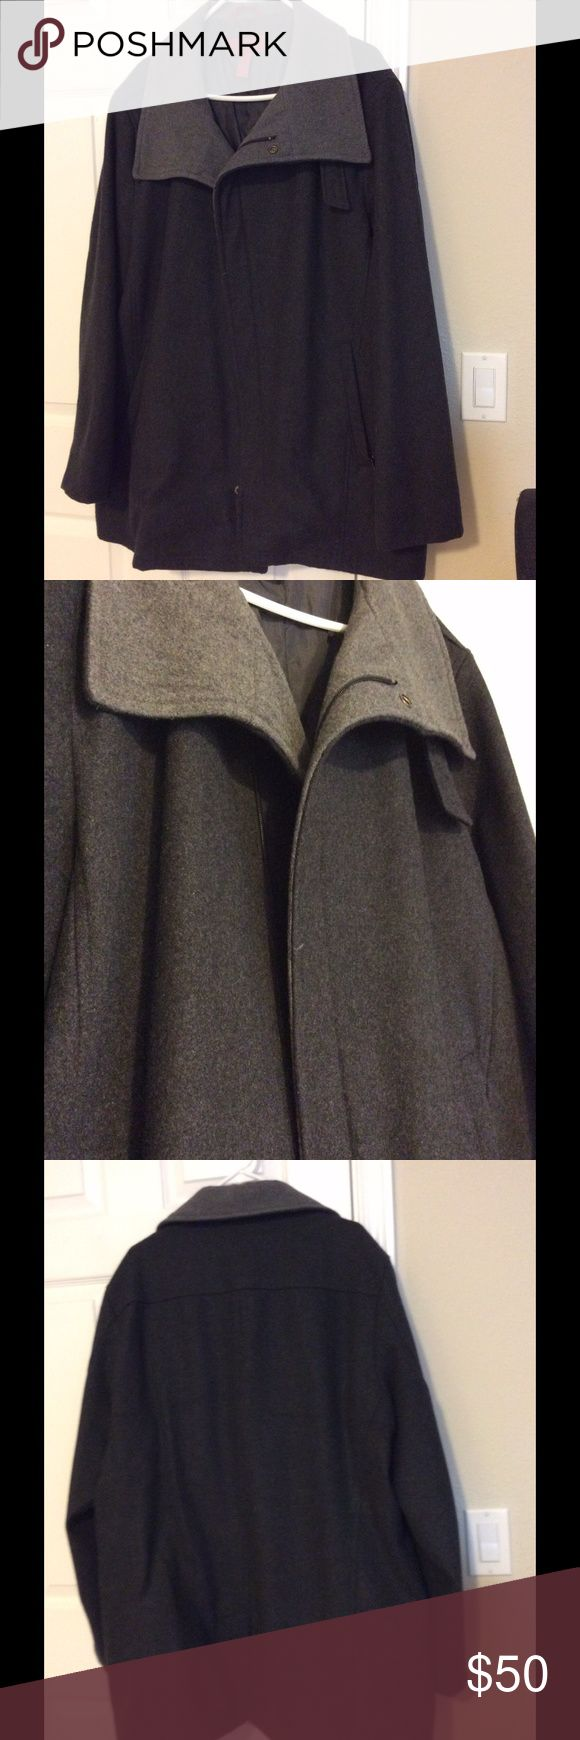 MOVING SALE!!! Alfani Men's Wool Coat Excellent condition Alfani Jackets & Coats Pea Coats